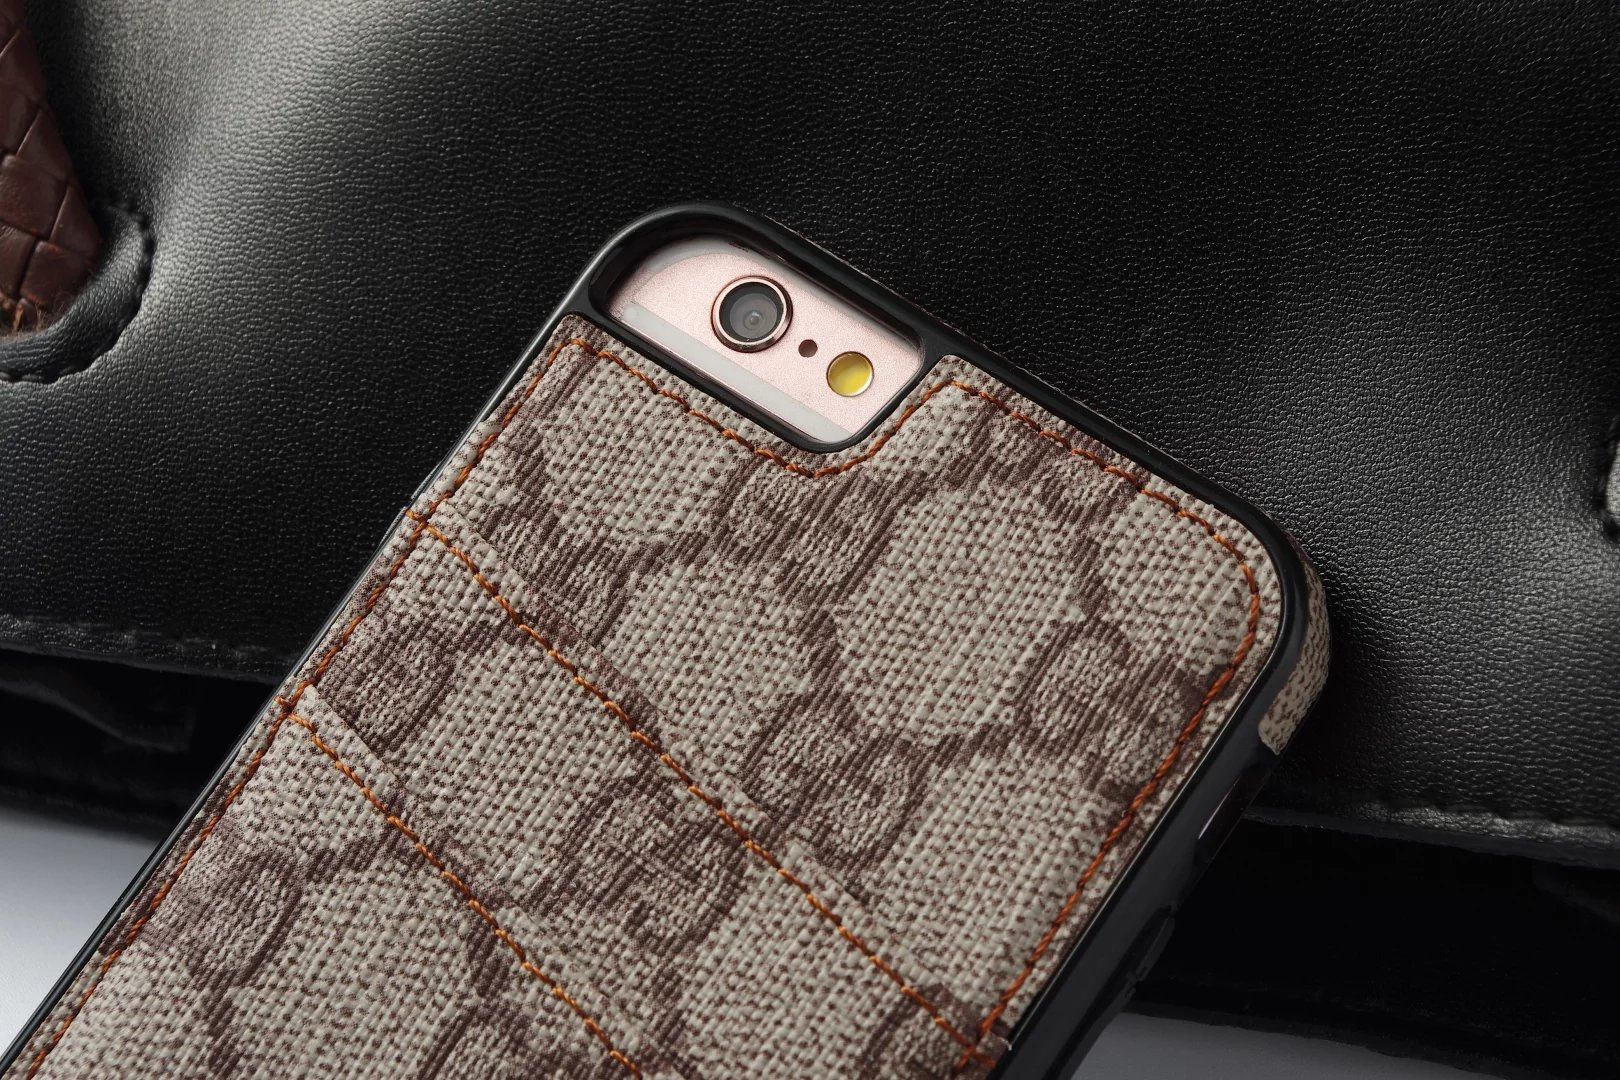 iphone 8 Plusa cases the best iphone 8 Plus cases Louis Vuitton iphone 8 Plus case cover for iphone customise your own iphone case good cell phone case brands buy phone cases online cell phone covers online cases and covers